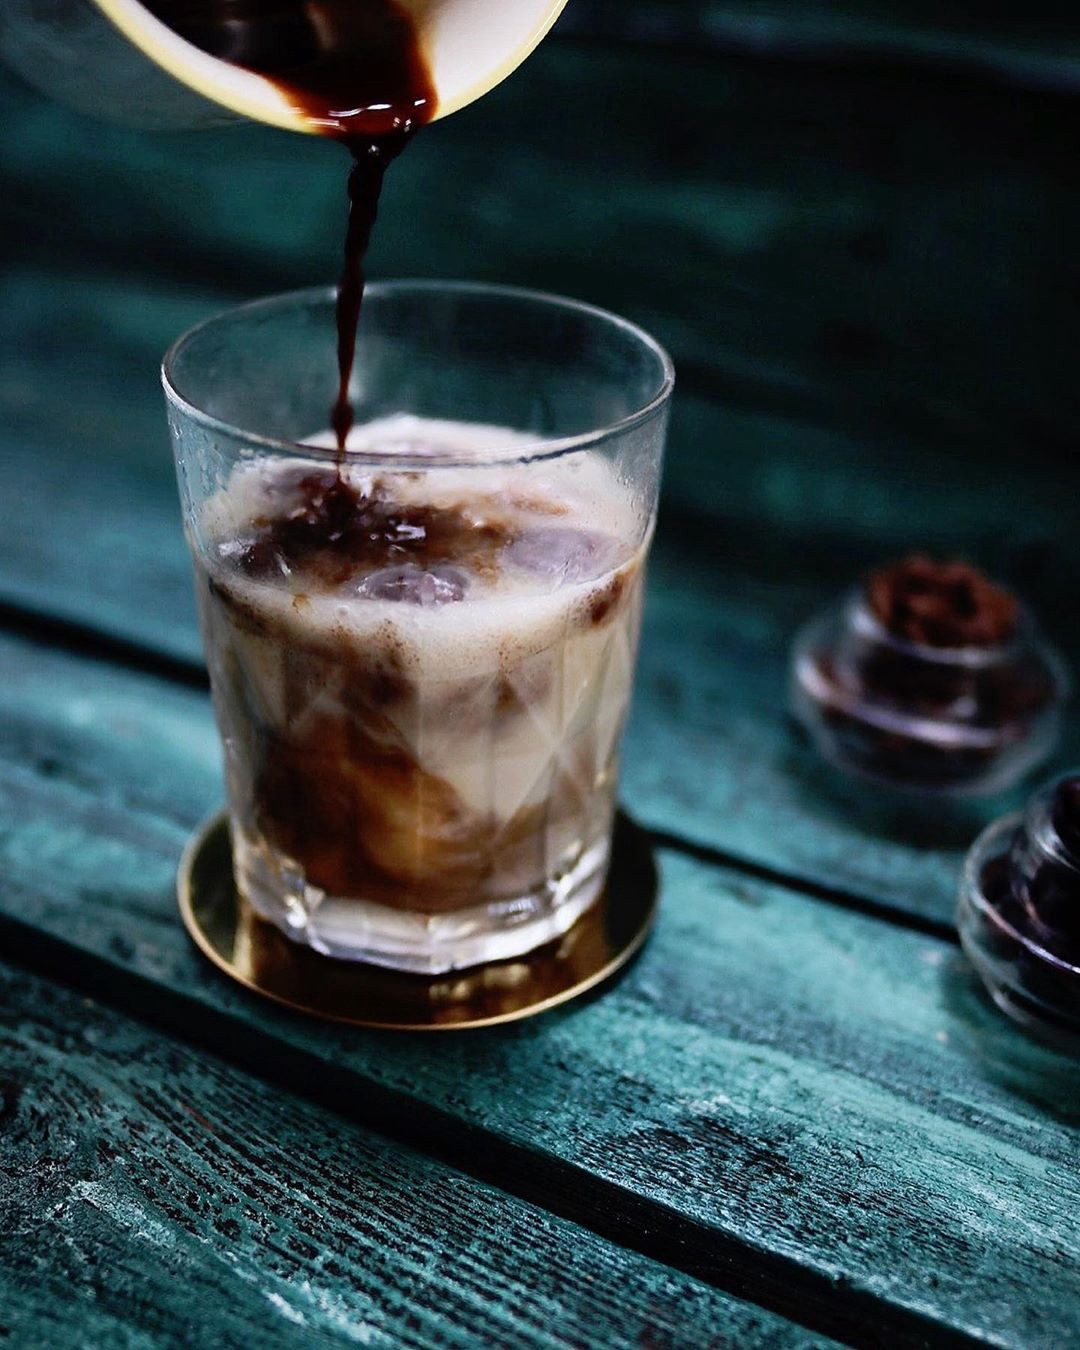 Iced Latte VS Iced Coffee: What's the difference?